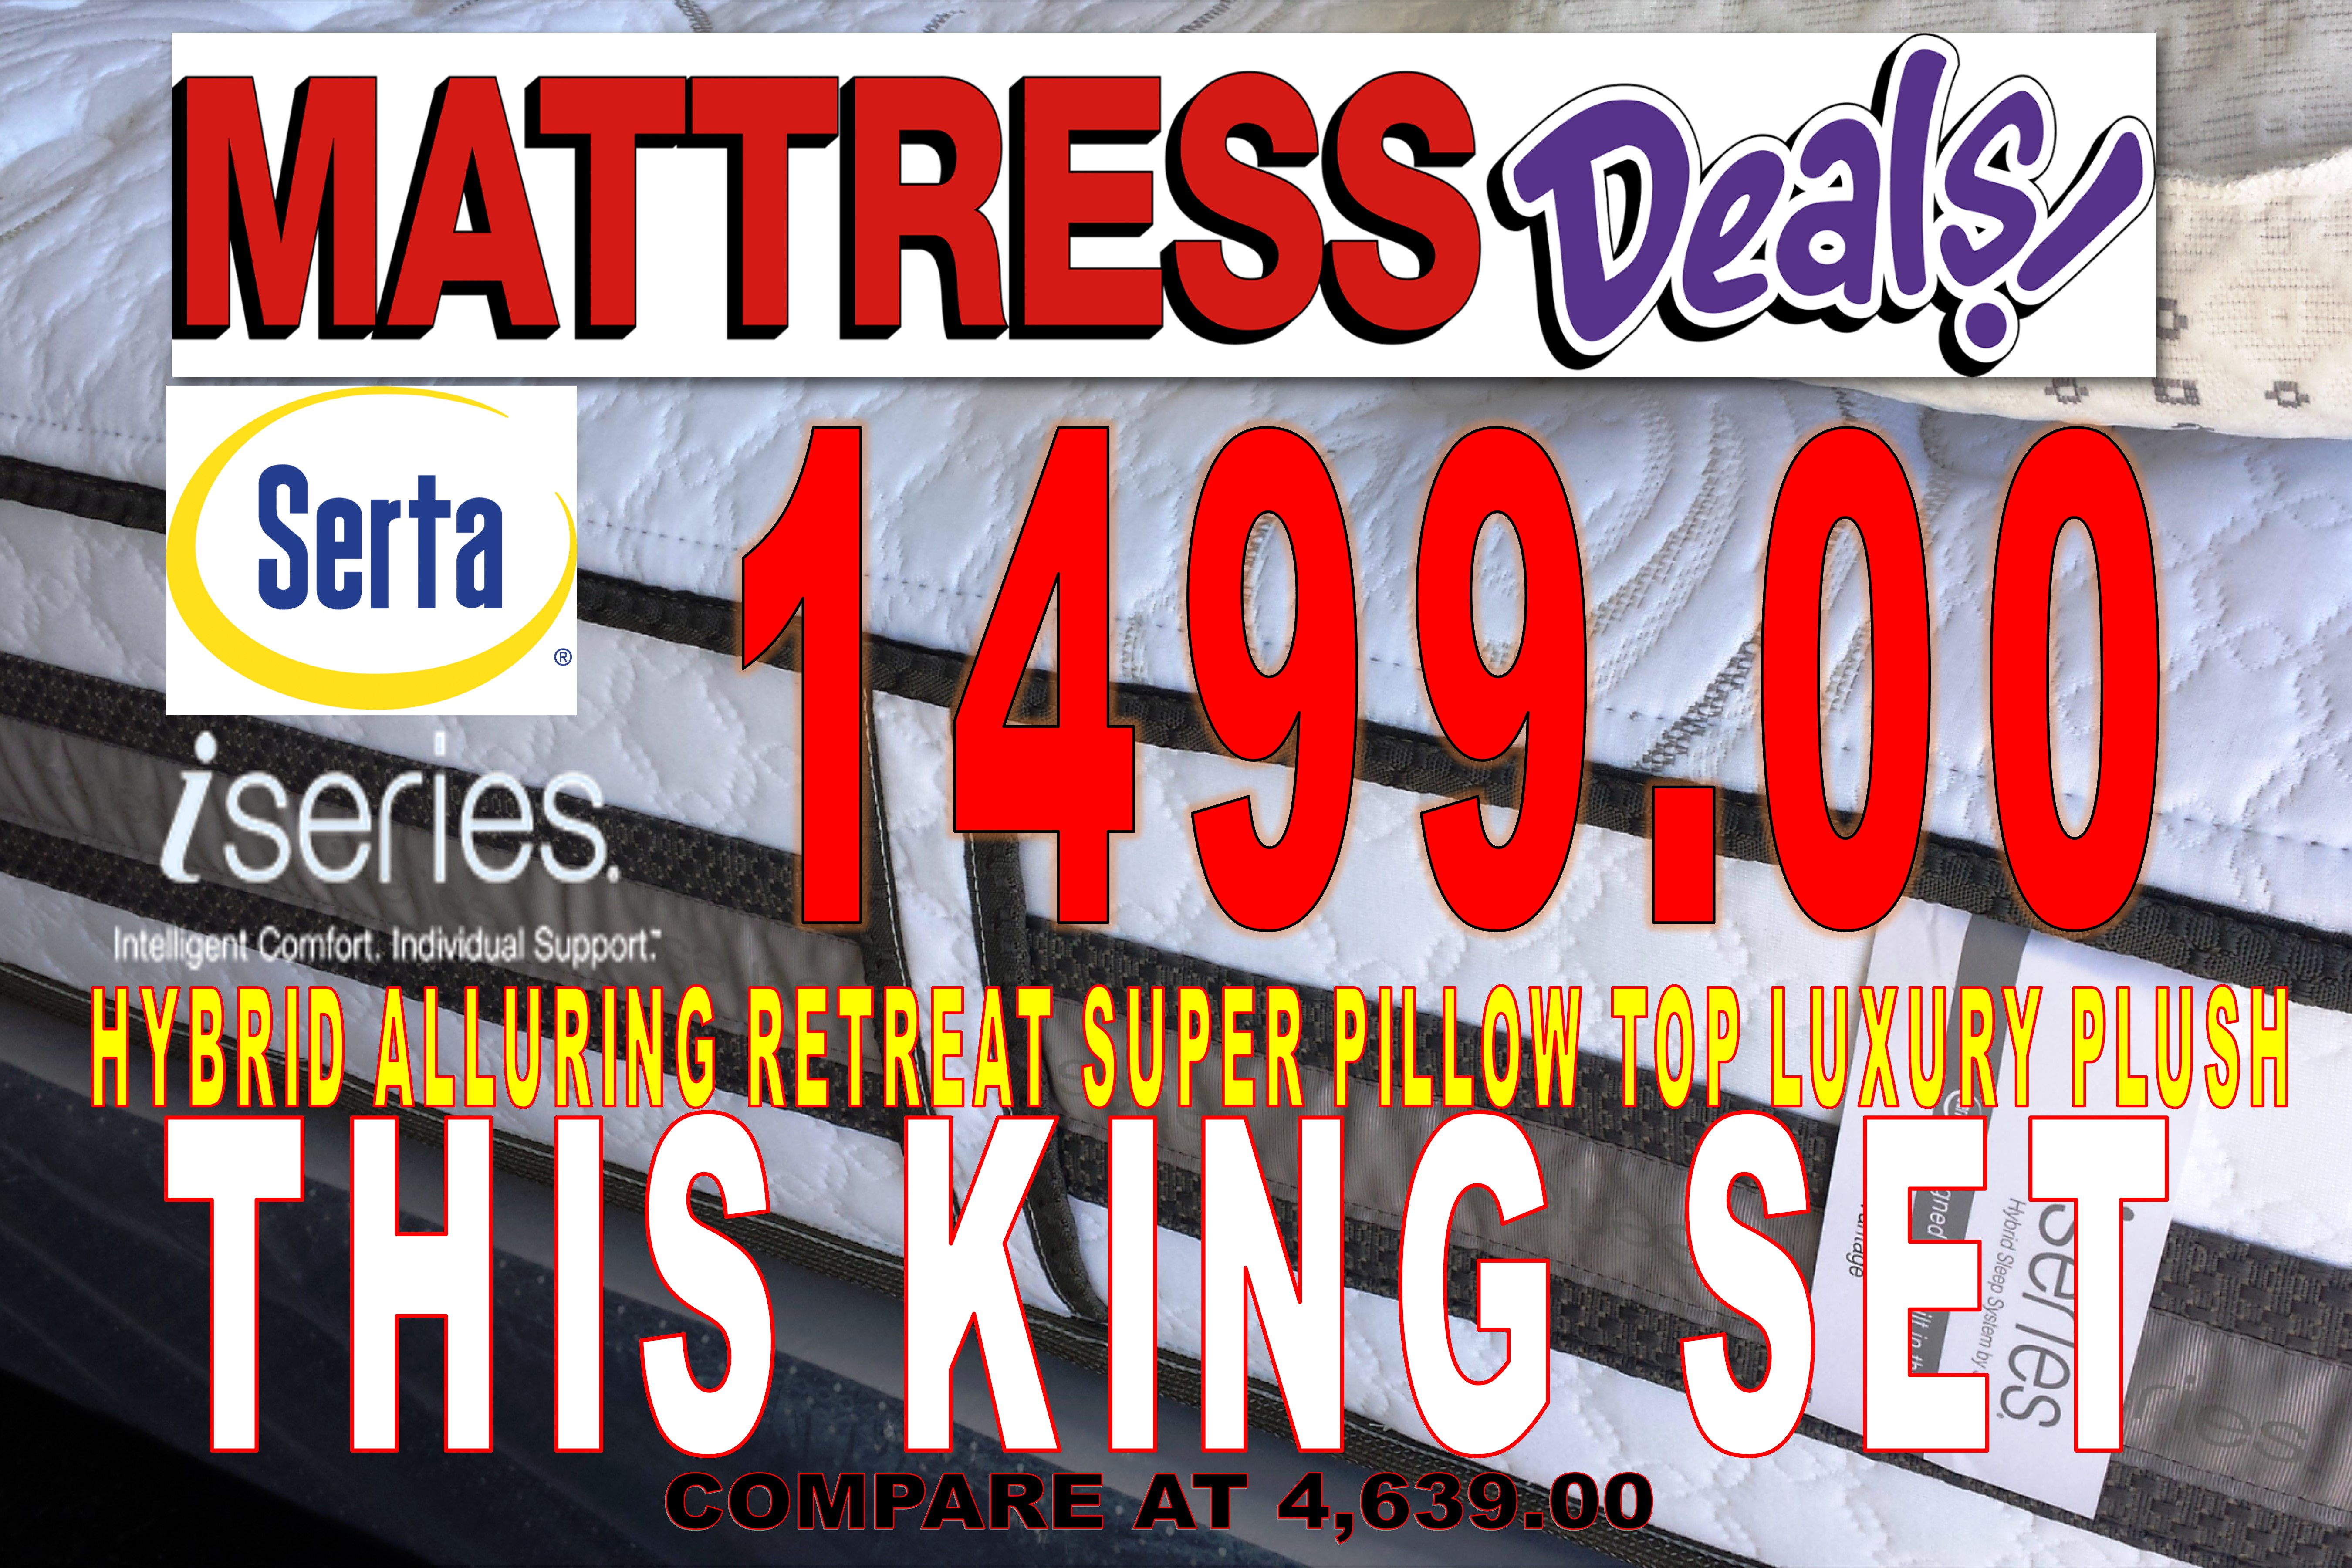 Mattress Deals image 48